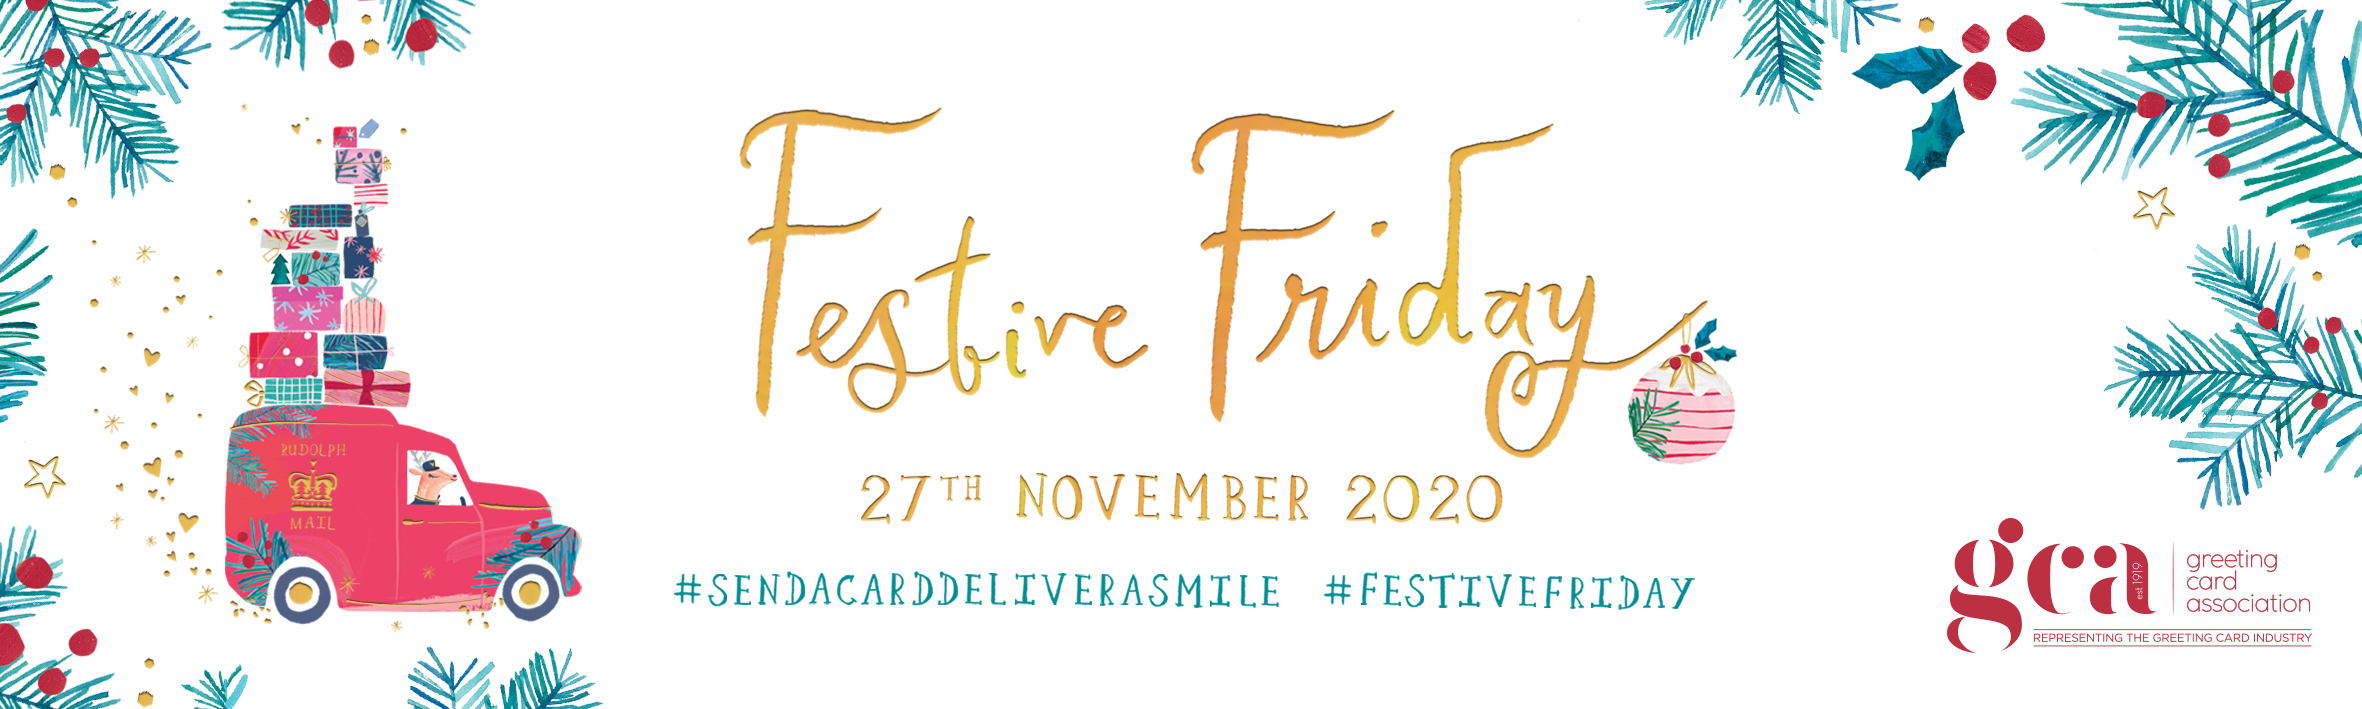 Above: A downloadable Festive Friday email banner.